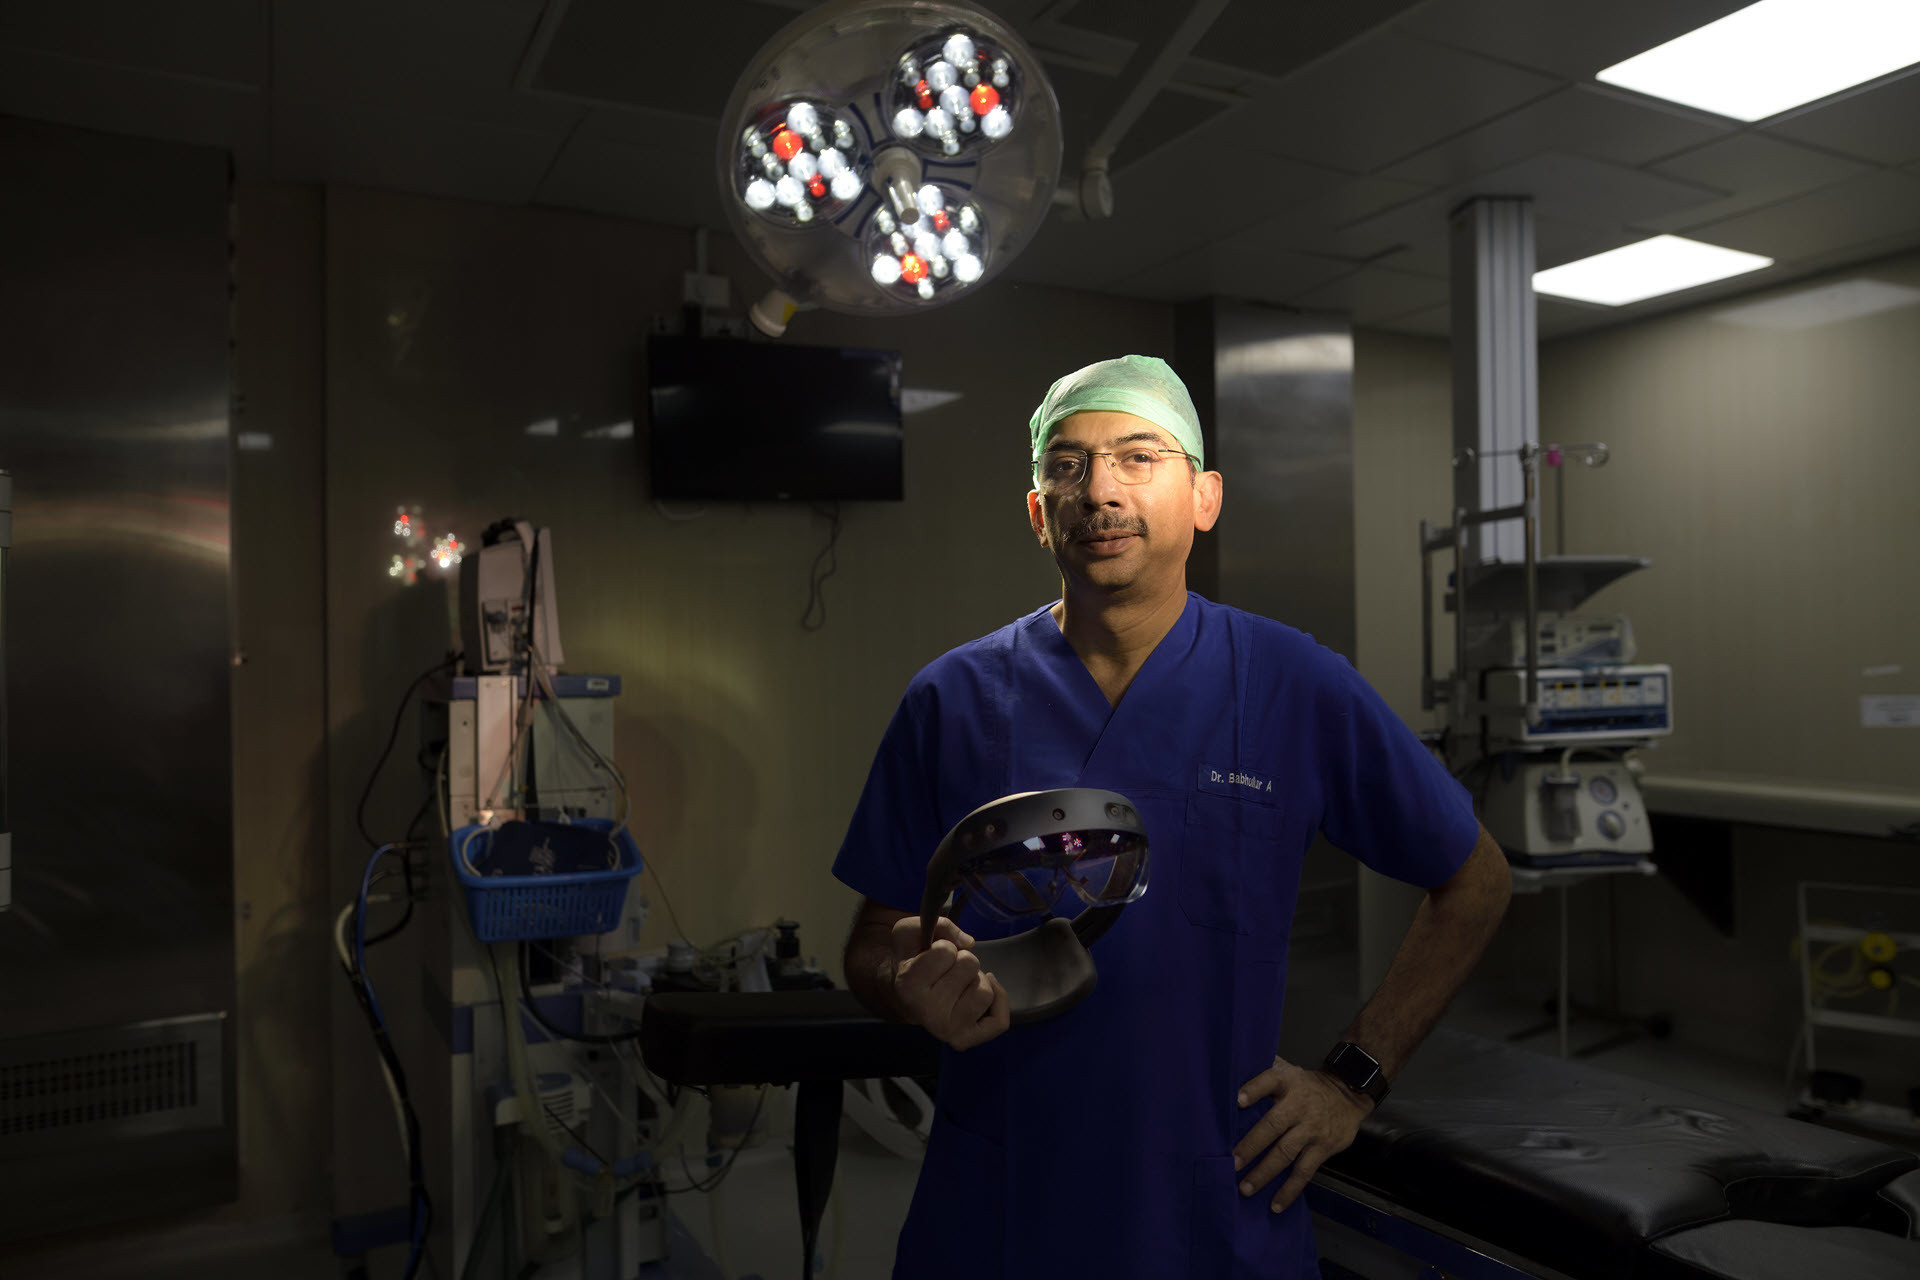 image of Dr. Ashish Babhulkar, based in India, who believes the HoloLens will 'revolutionize treatment' in remote parts of the world